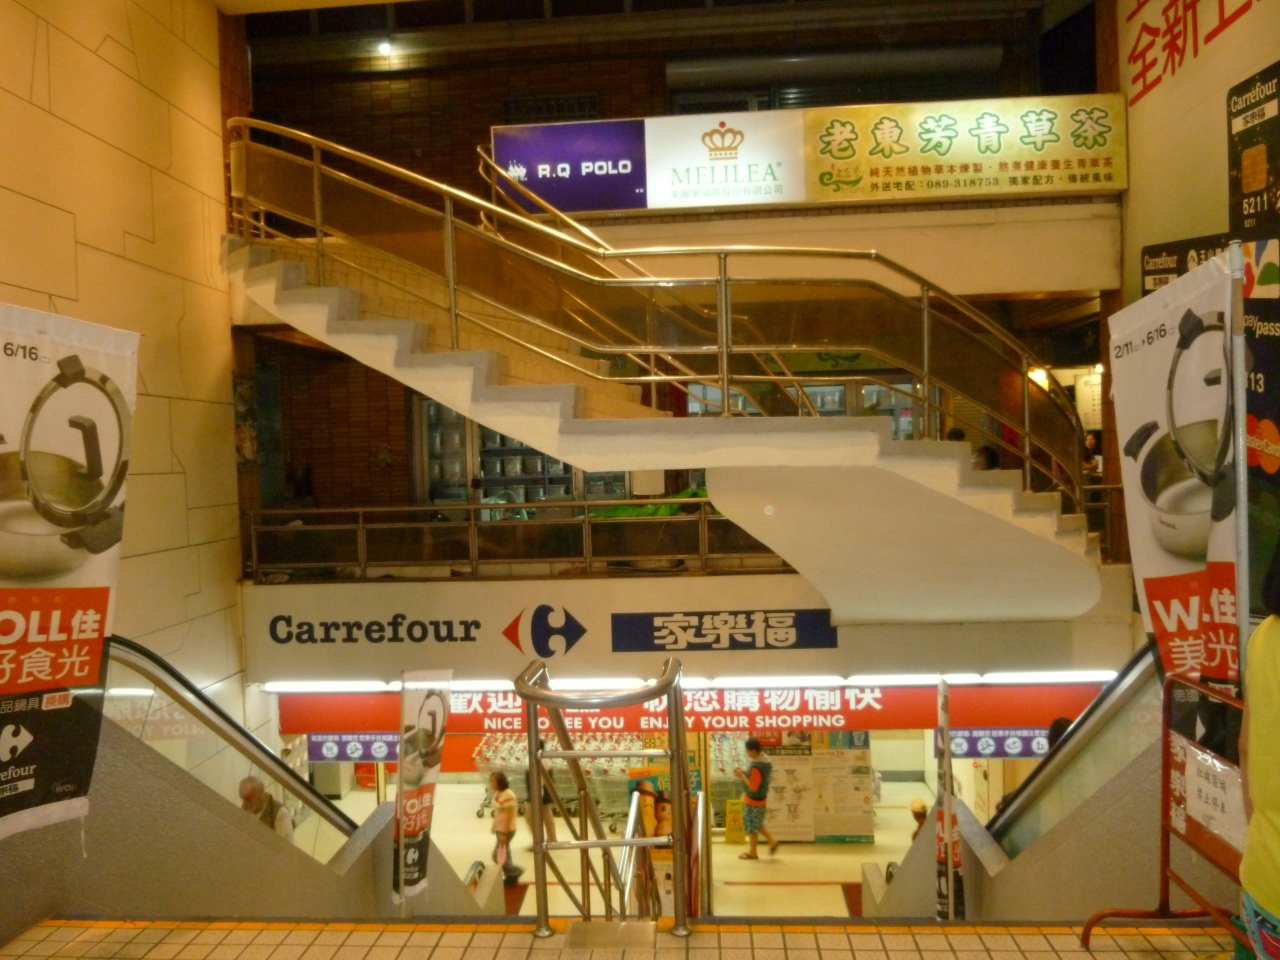 carrefour expand abroad Nordea launches nordea trade portal to offer you the most qualified information, tools and resources to help you grow your business abroad.